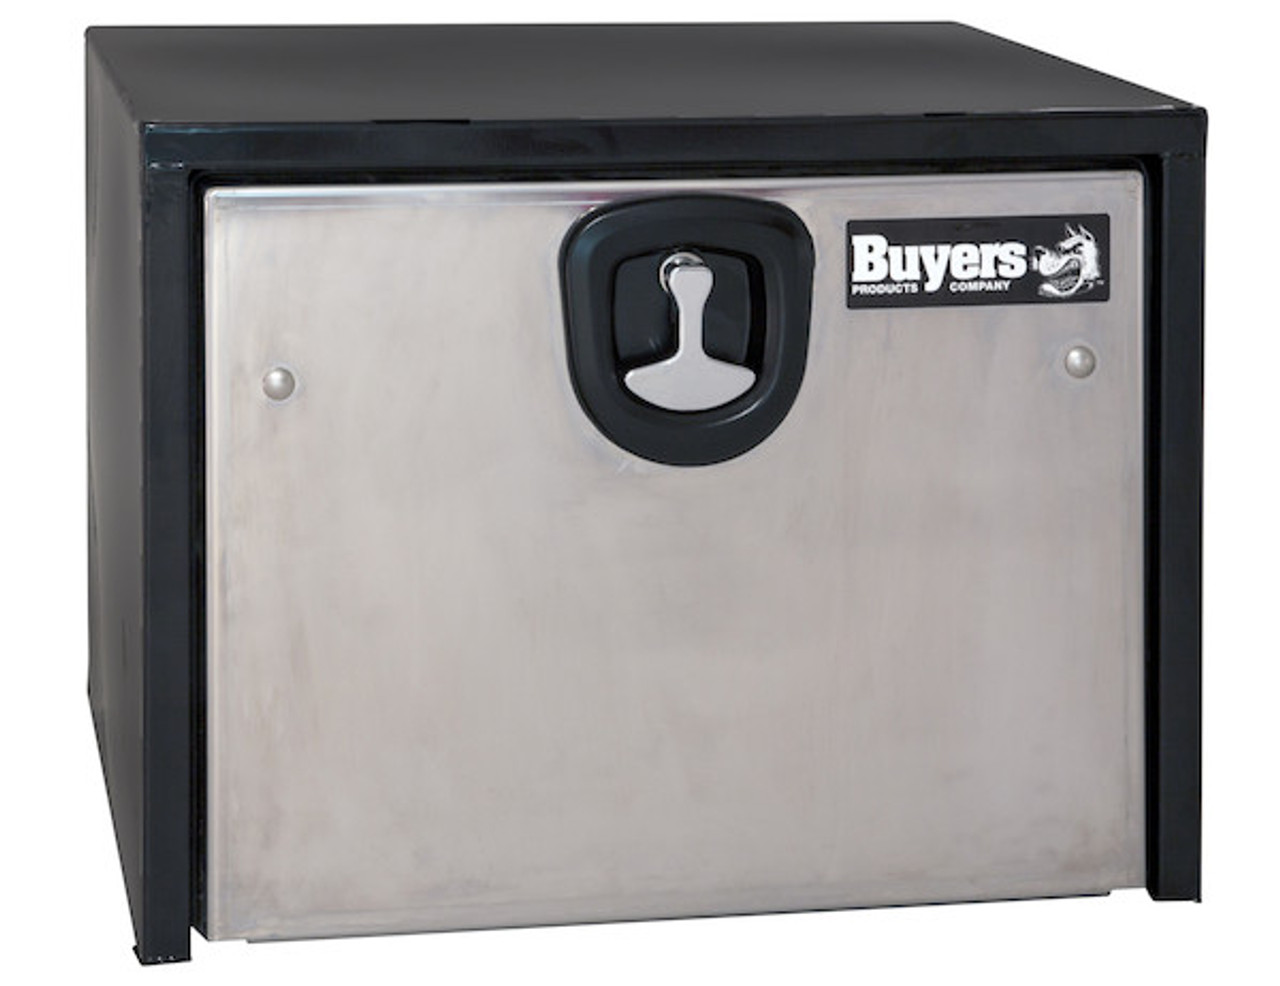 1702703 BUYERS PRODUCTS BLACK STEEL UNDERBODY TRUCK BOX WITH STAINLESS STEEL DOOR TOOLBOX